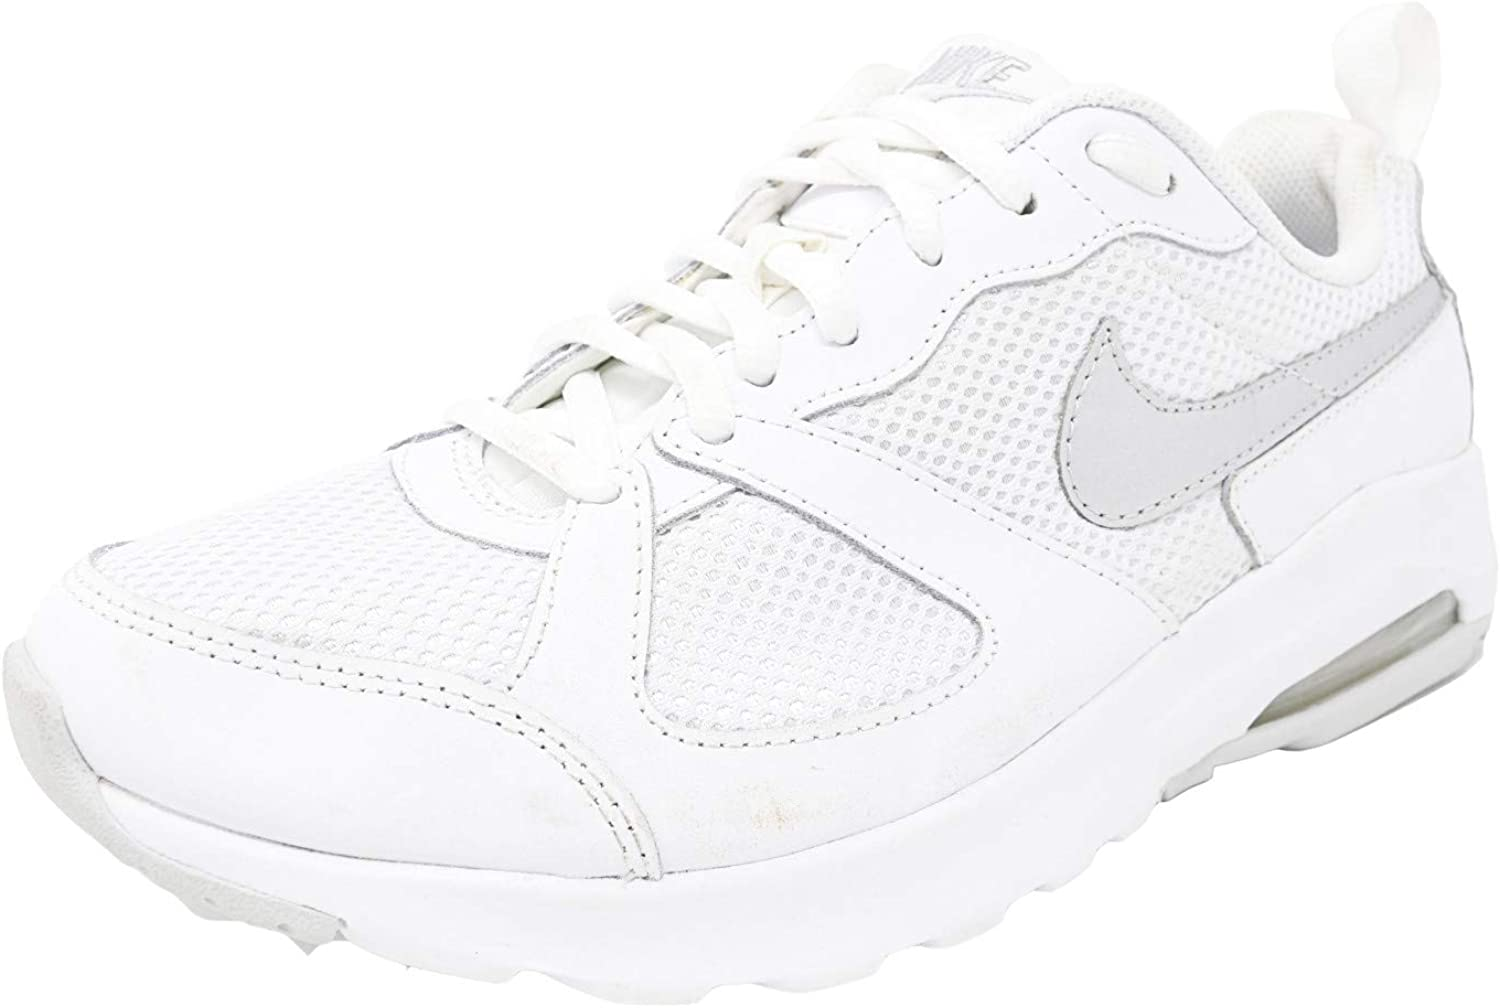 Woman's Nike Air Max Muse Running Shoes 654729 011